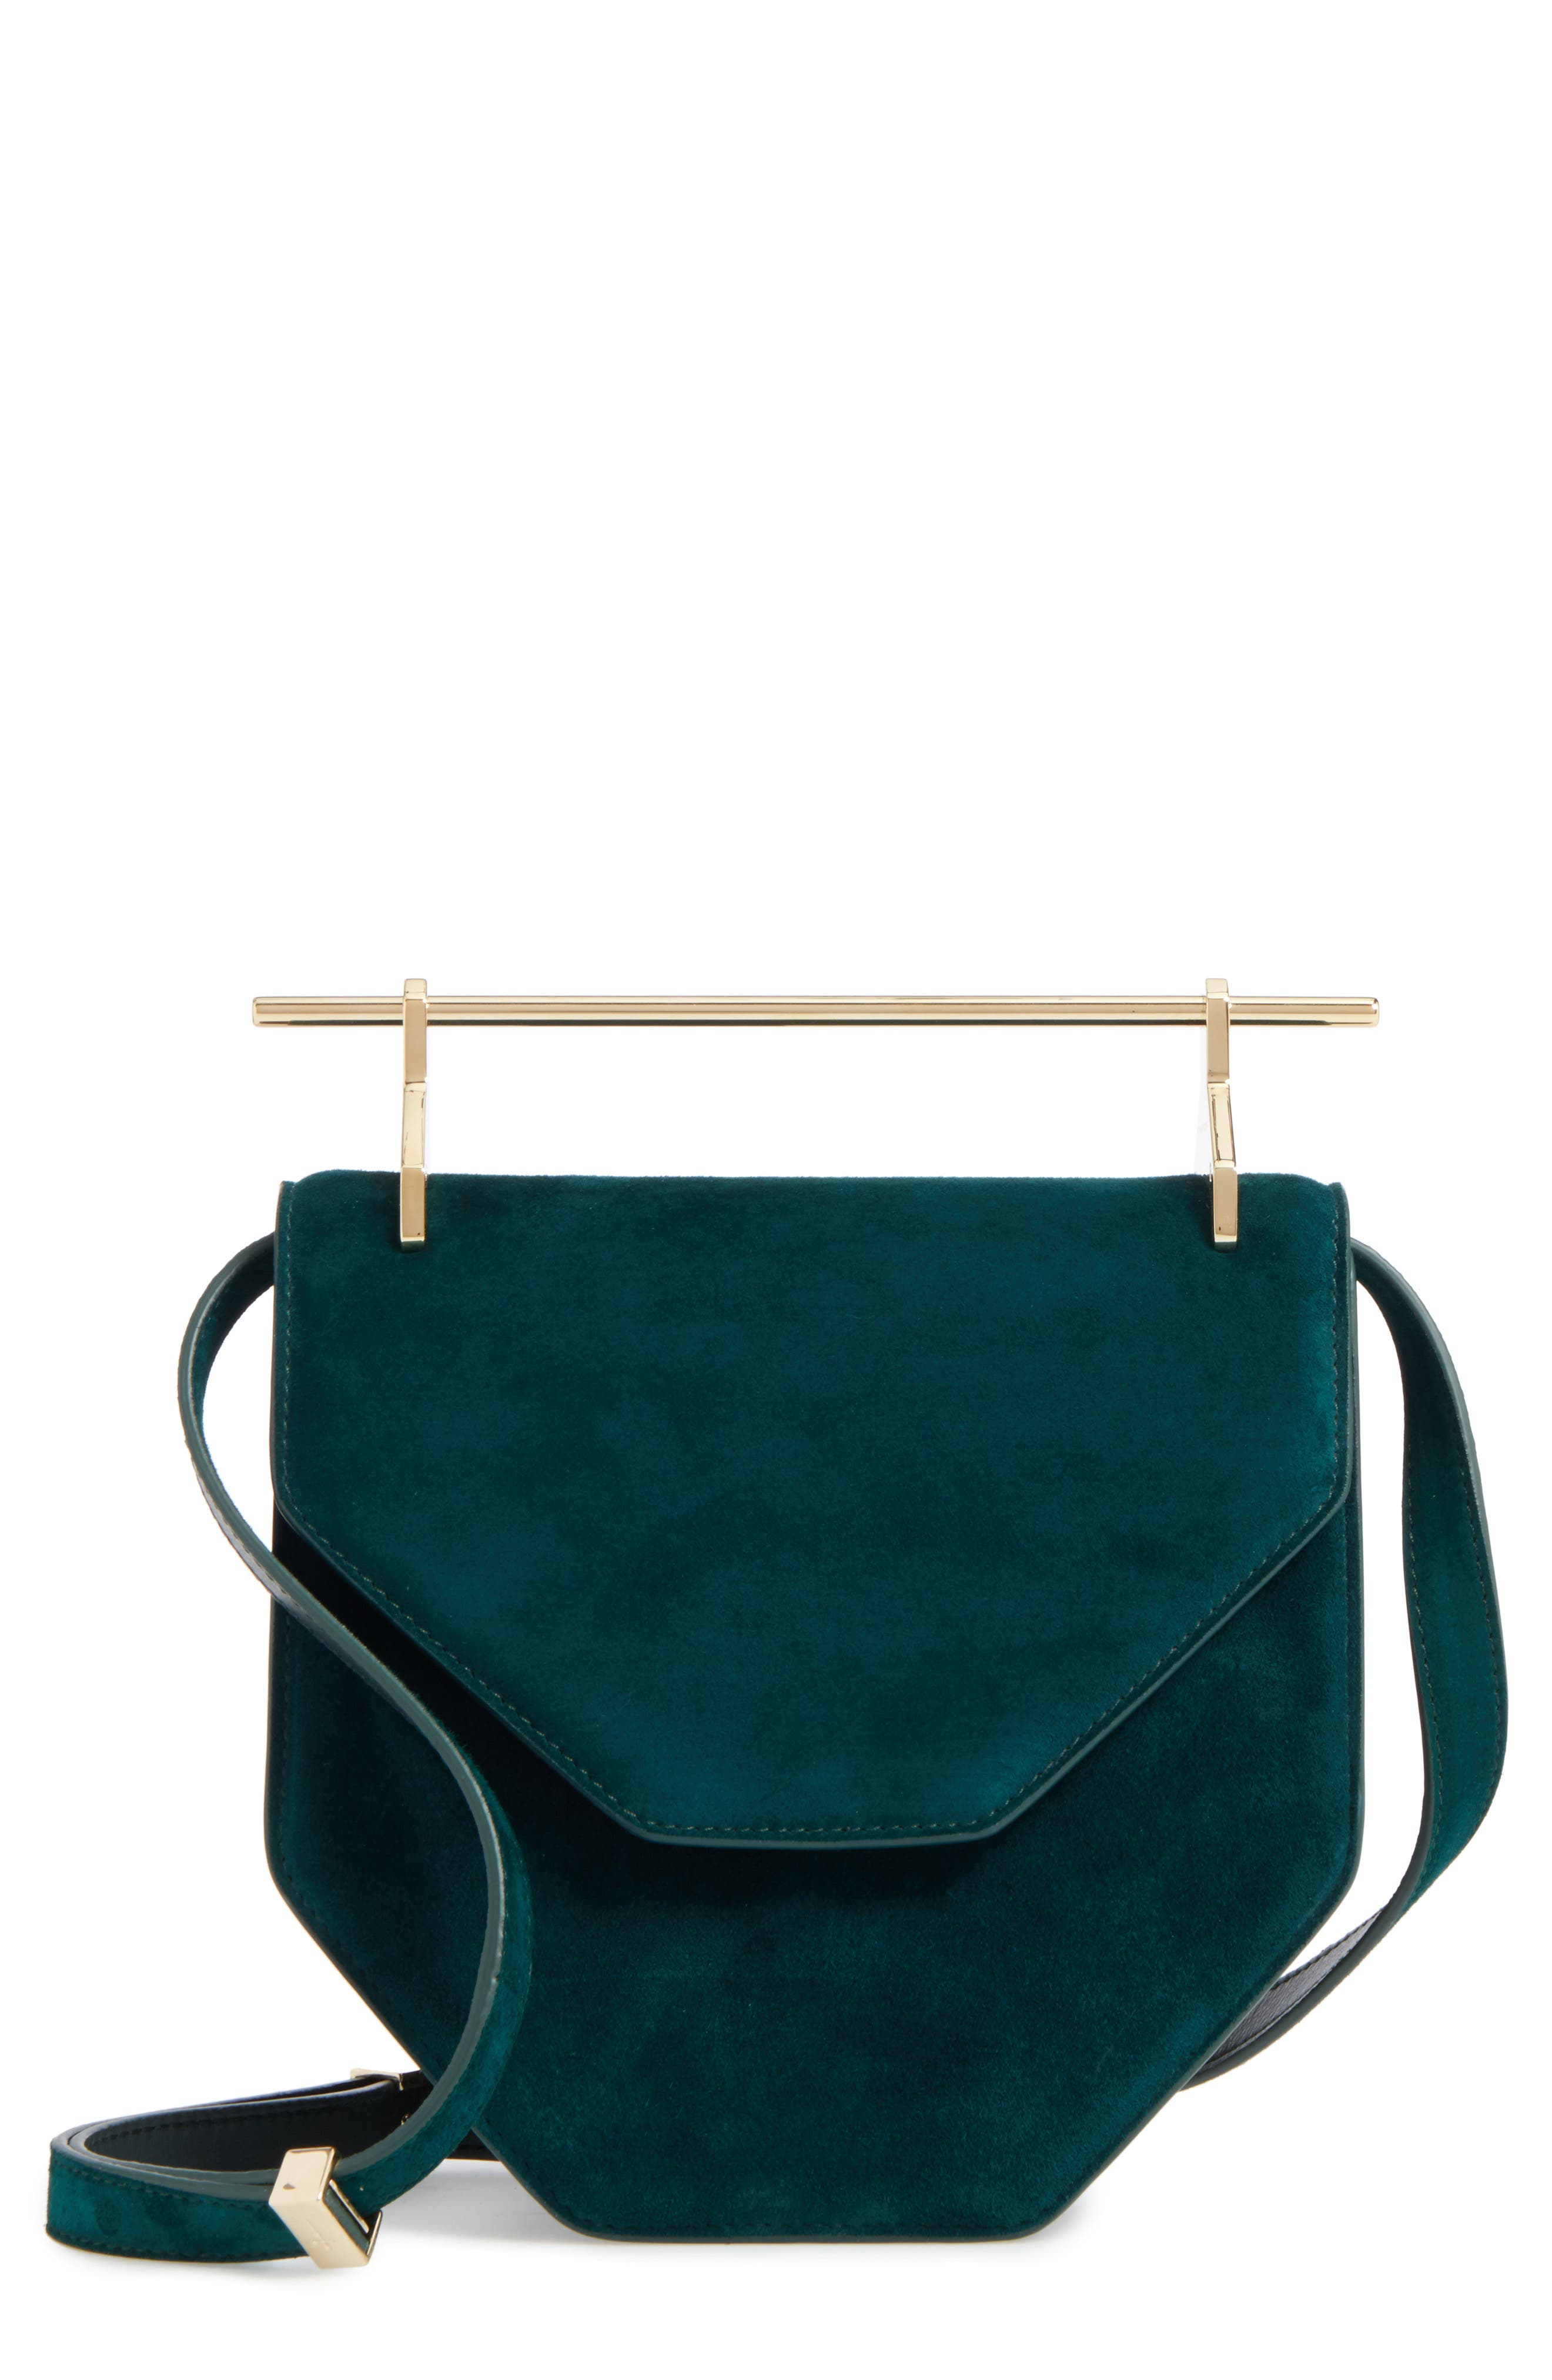 M2Malletier Amor Fati Suede Shoulder Bag